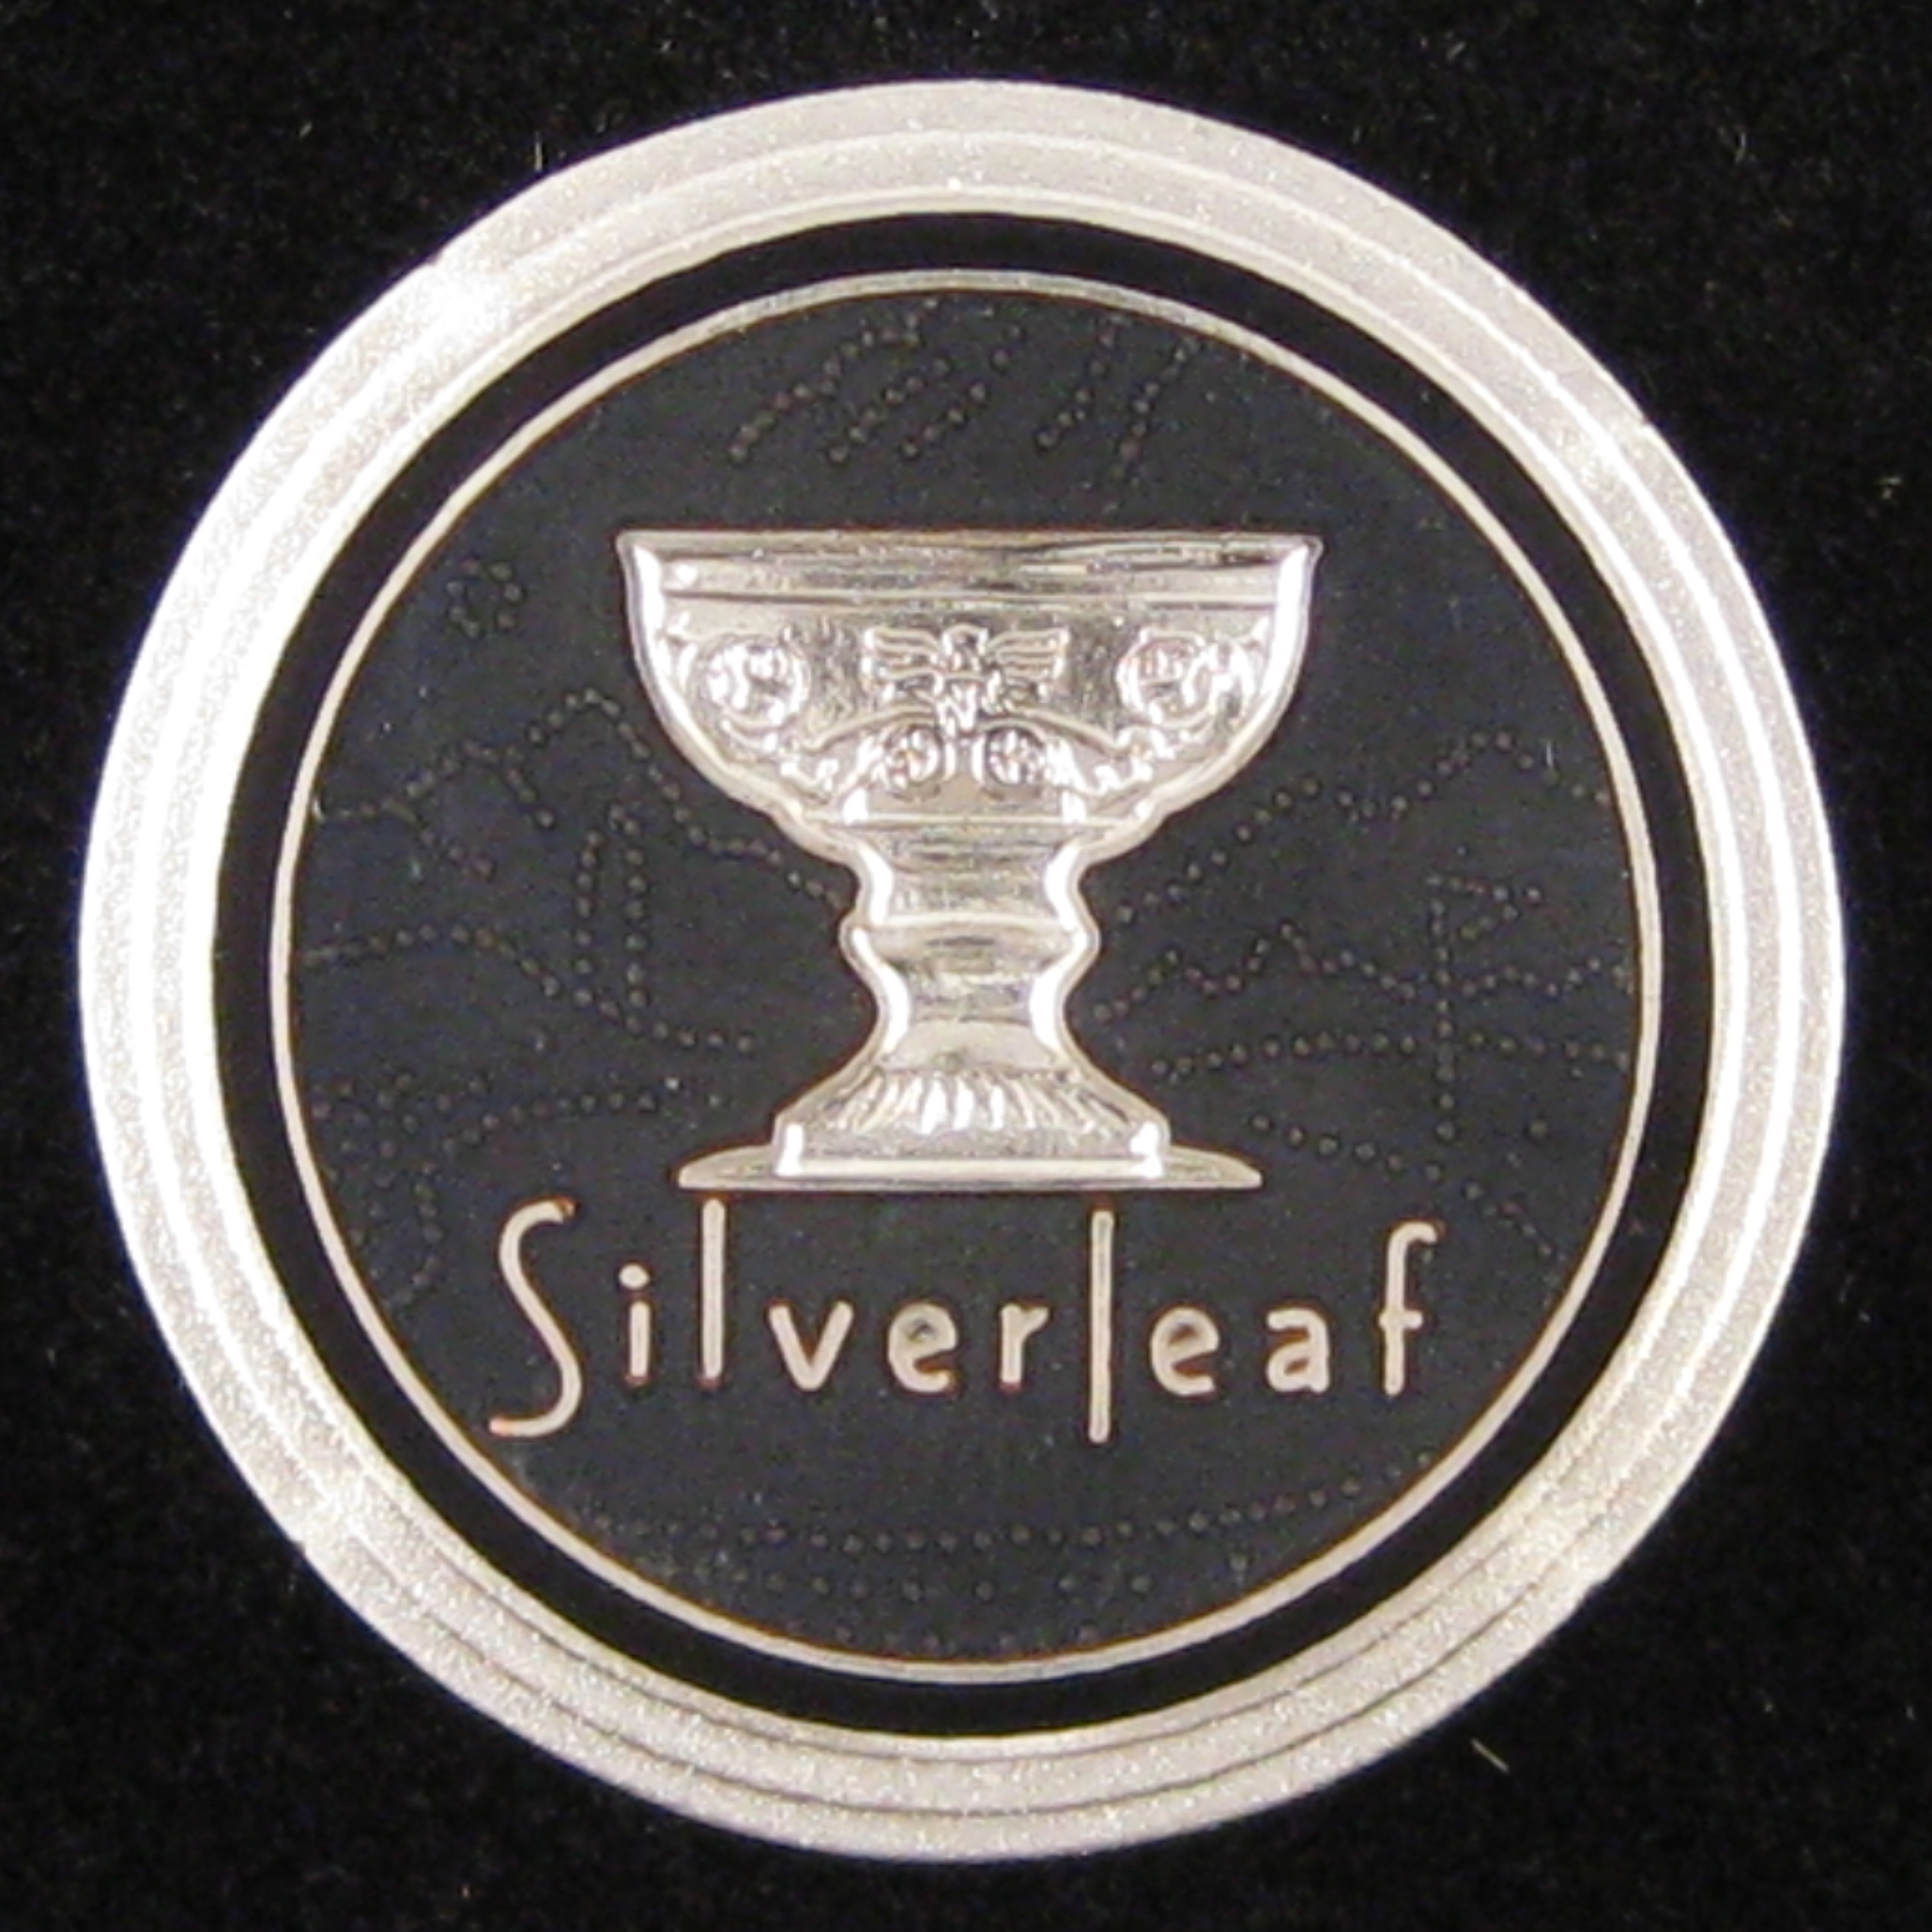 Silverleaf - Front Gray